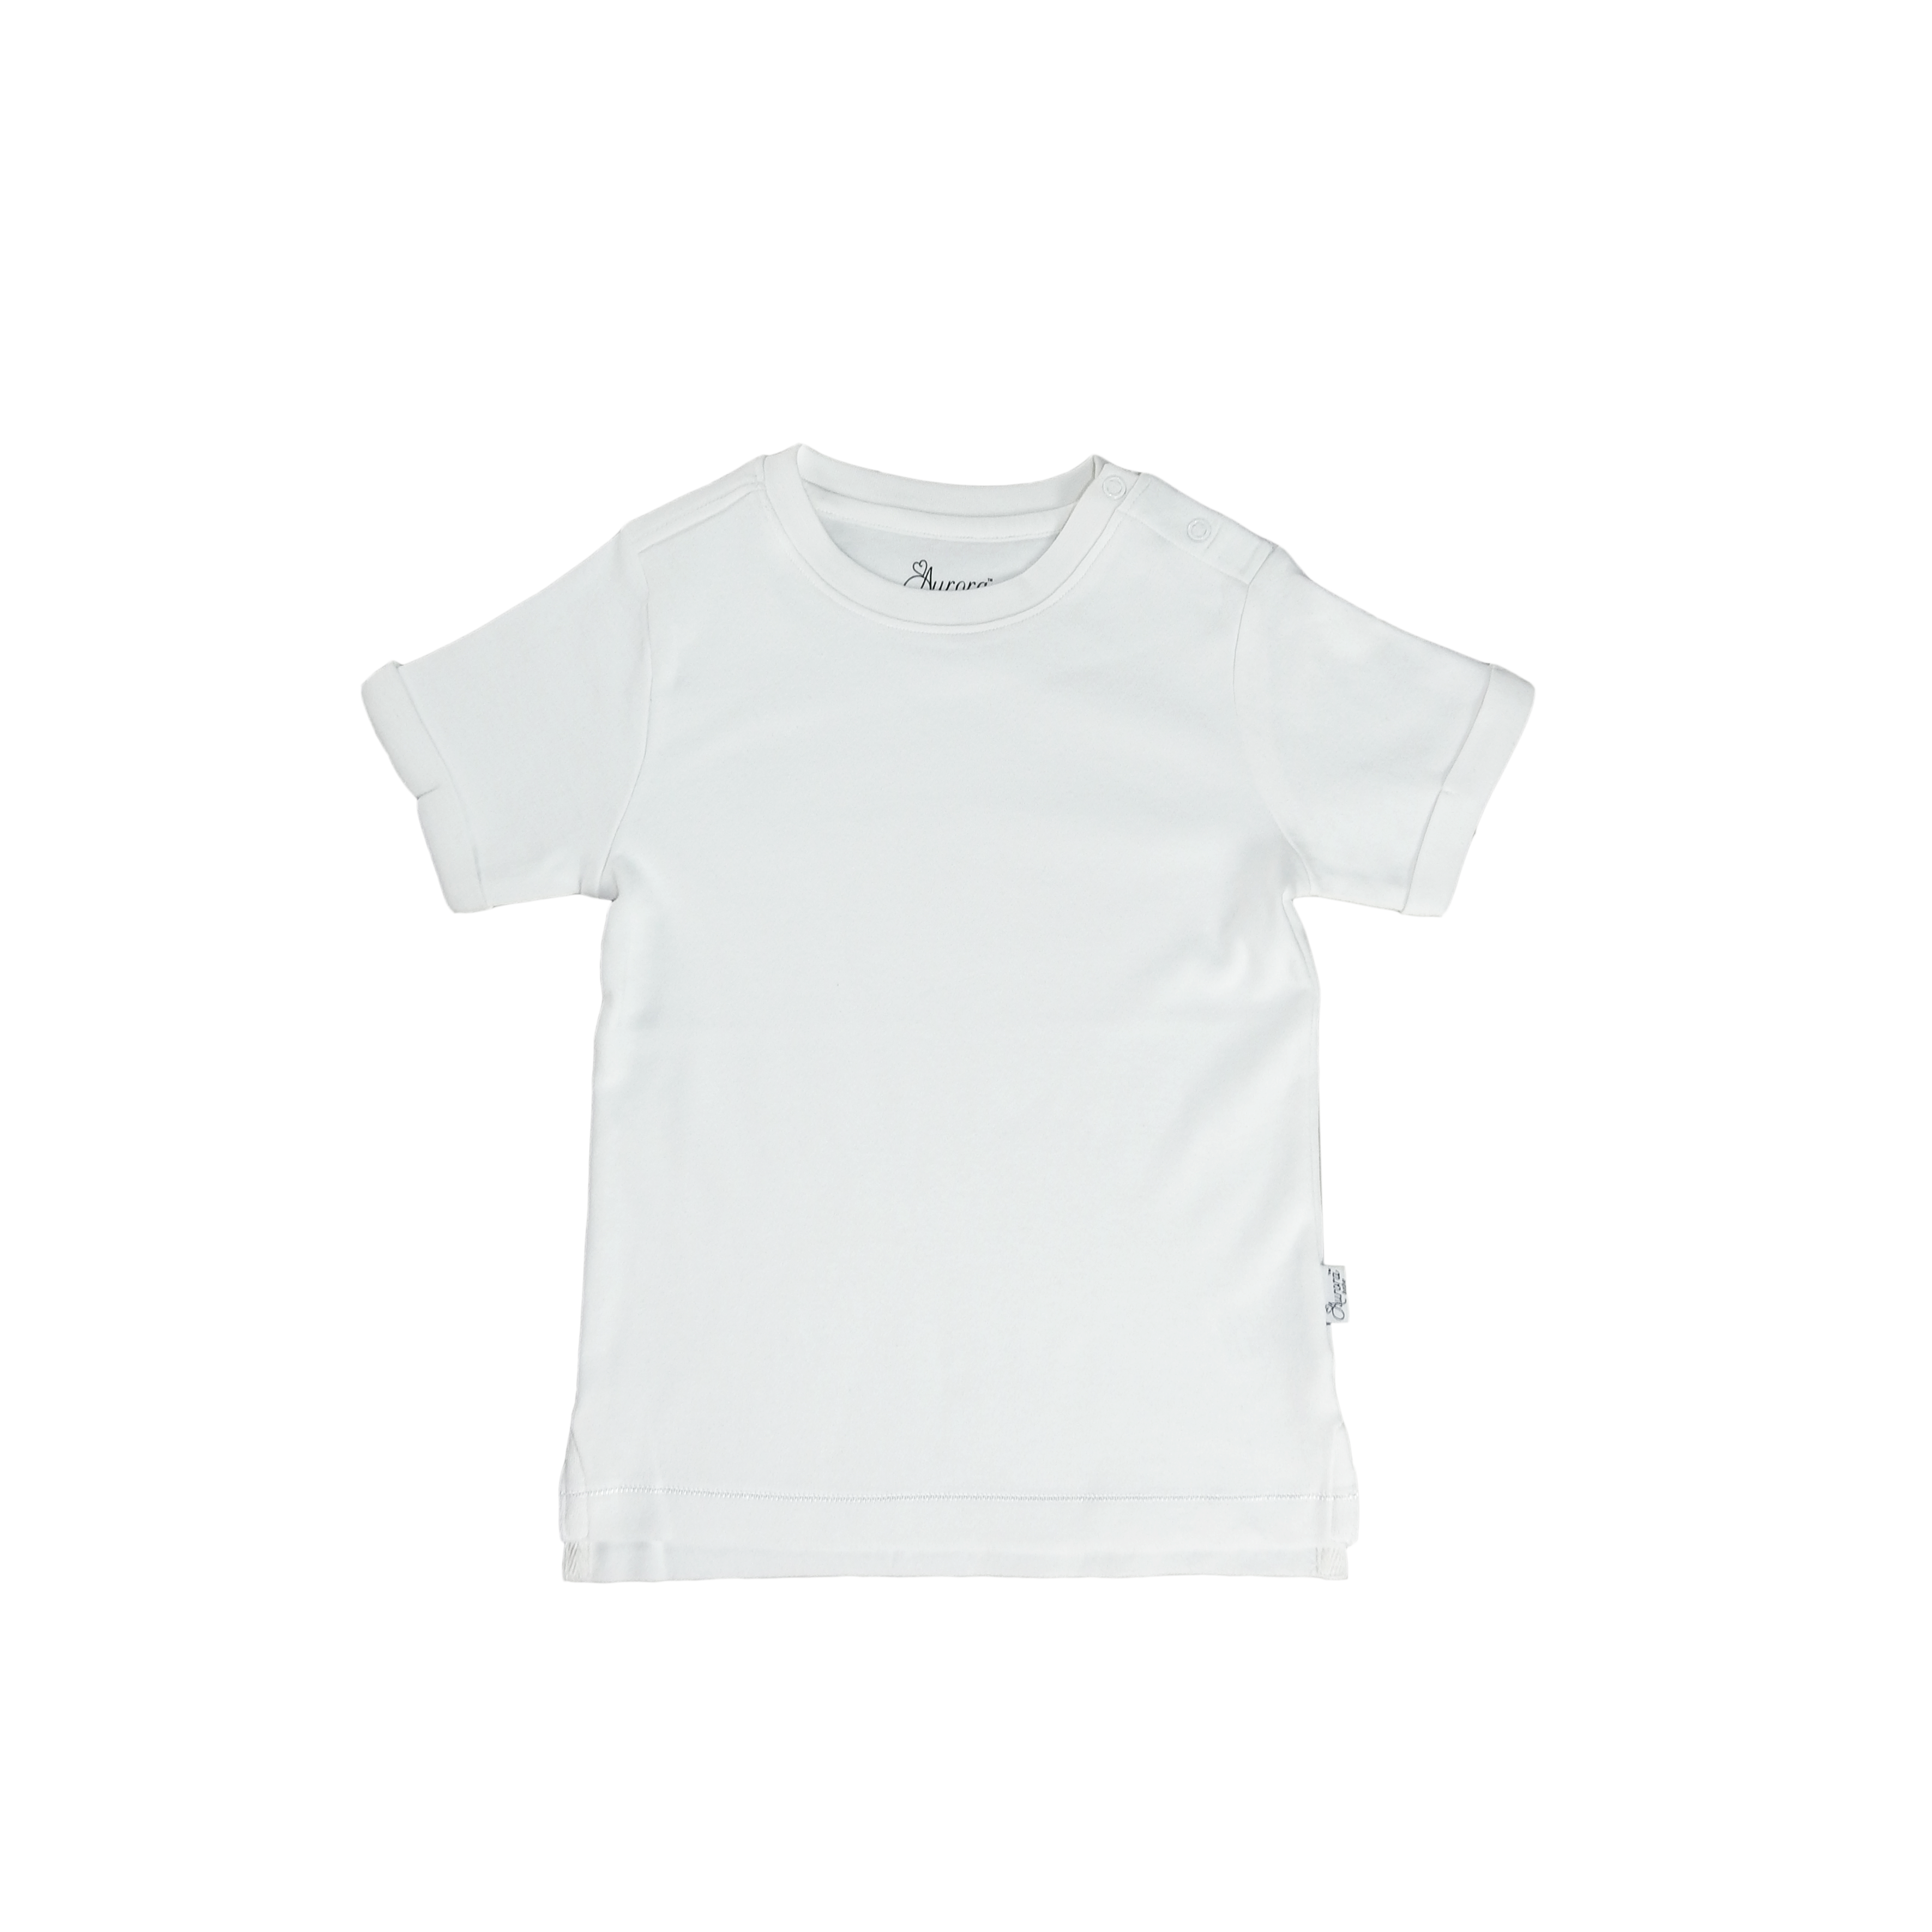 Organic Children's T-Shirt